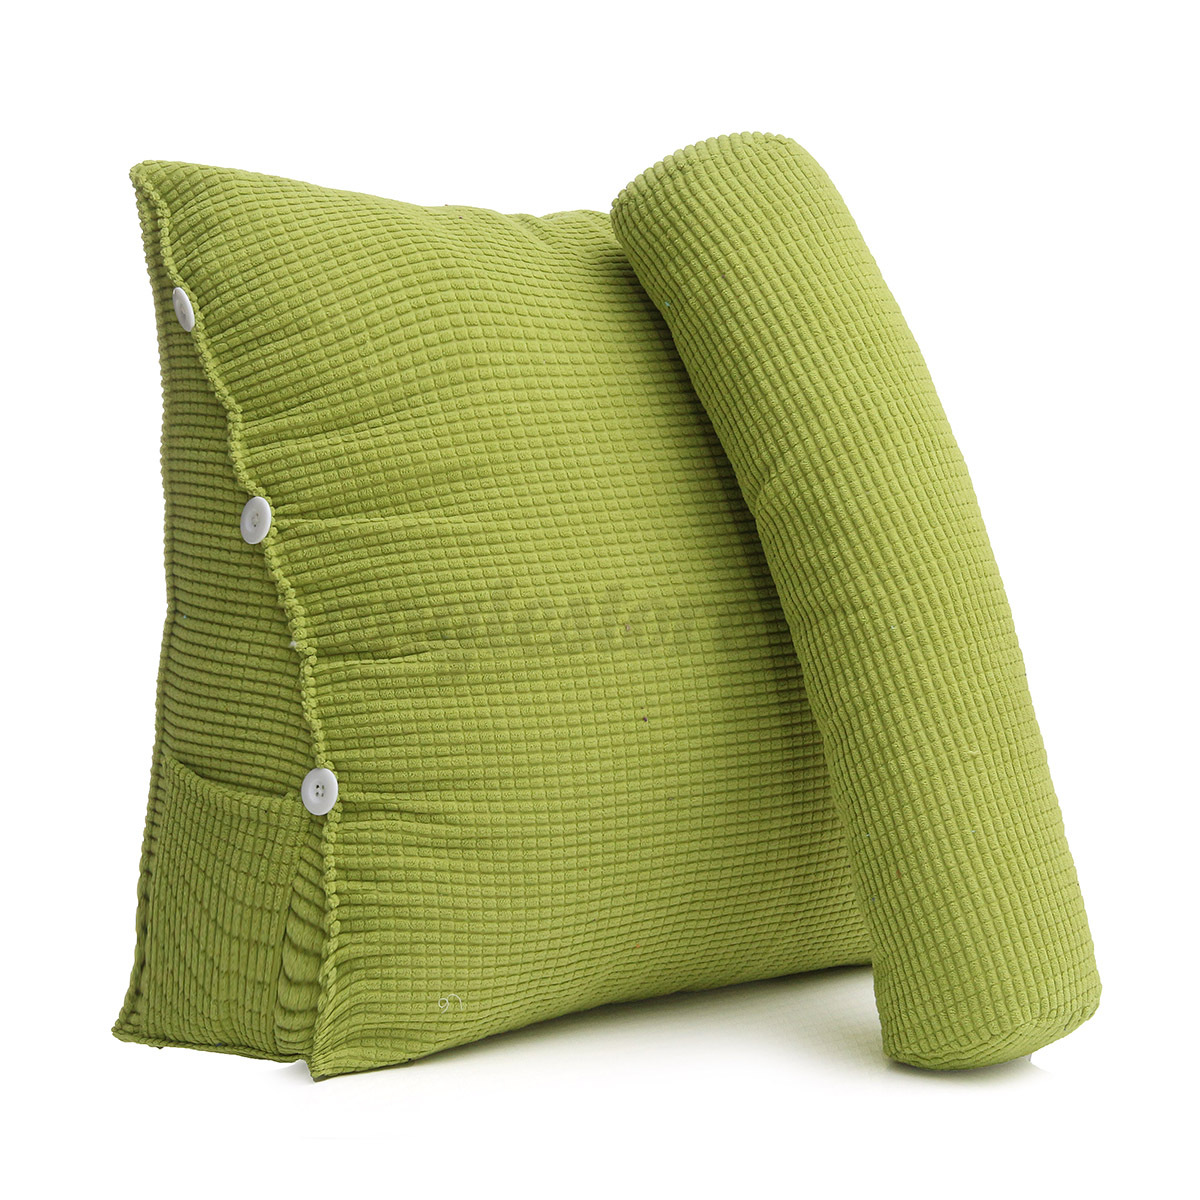 Pearl Wool Back Wedge Pillow Reading Bedrest Rest Support